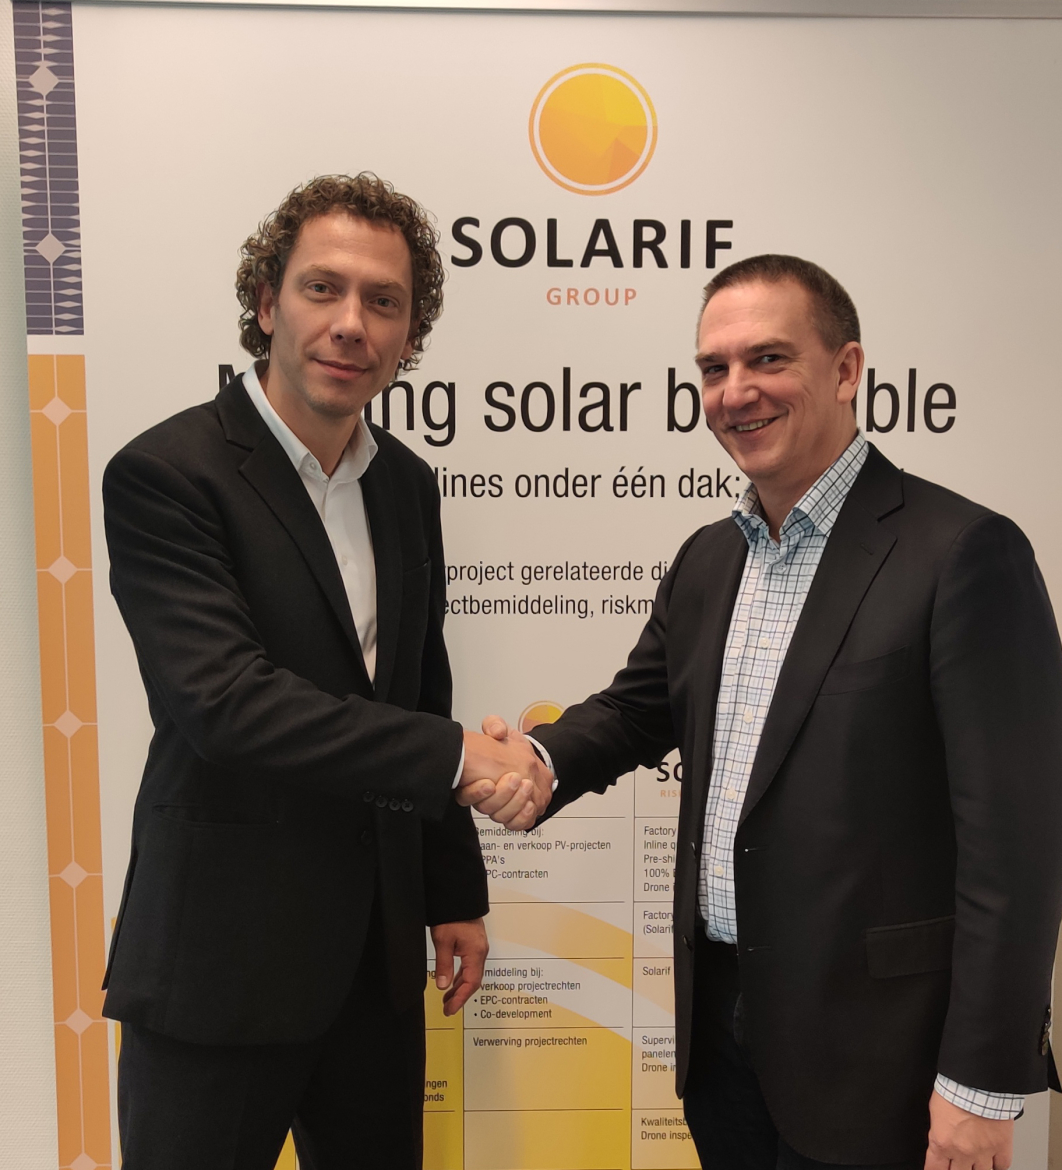 Dricus de Rooij (MD, Sinovoltaics) and Harry Wolkenfelt (CEO, Solarif)